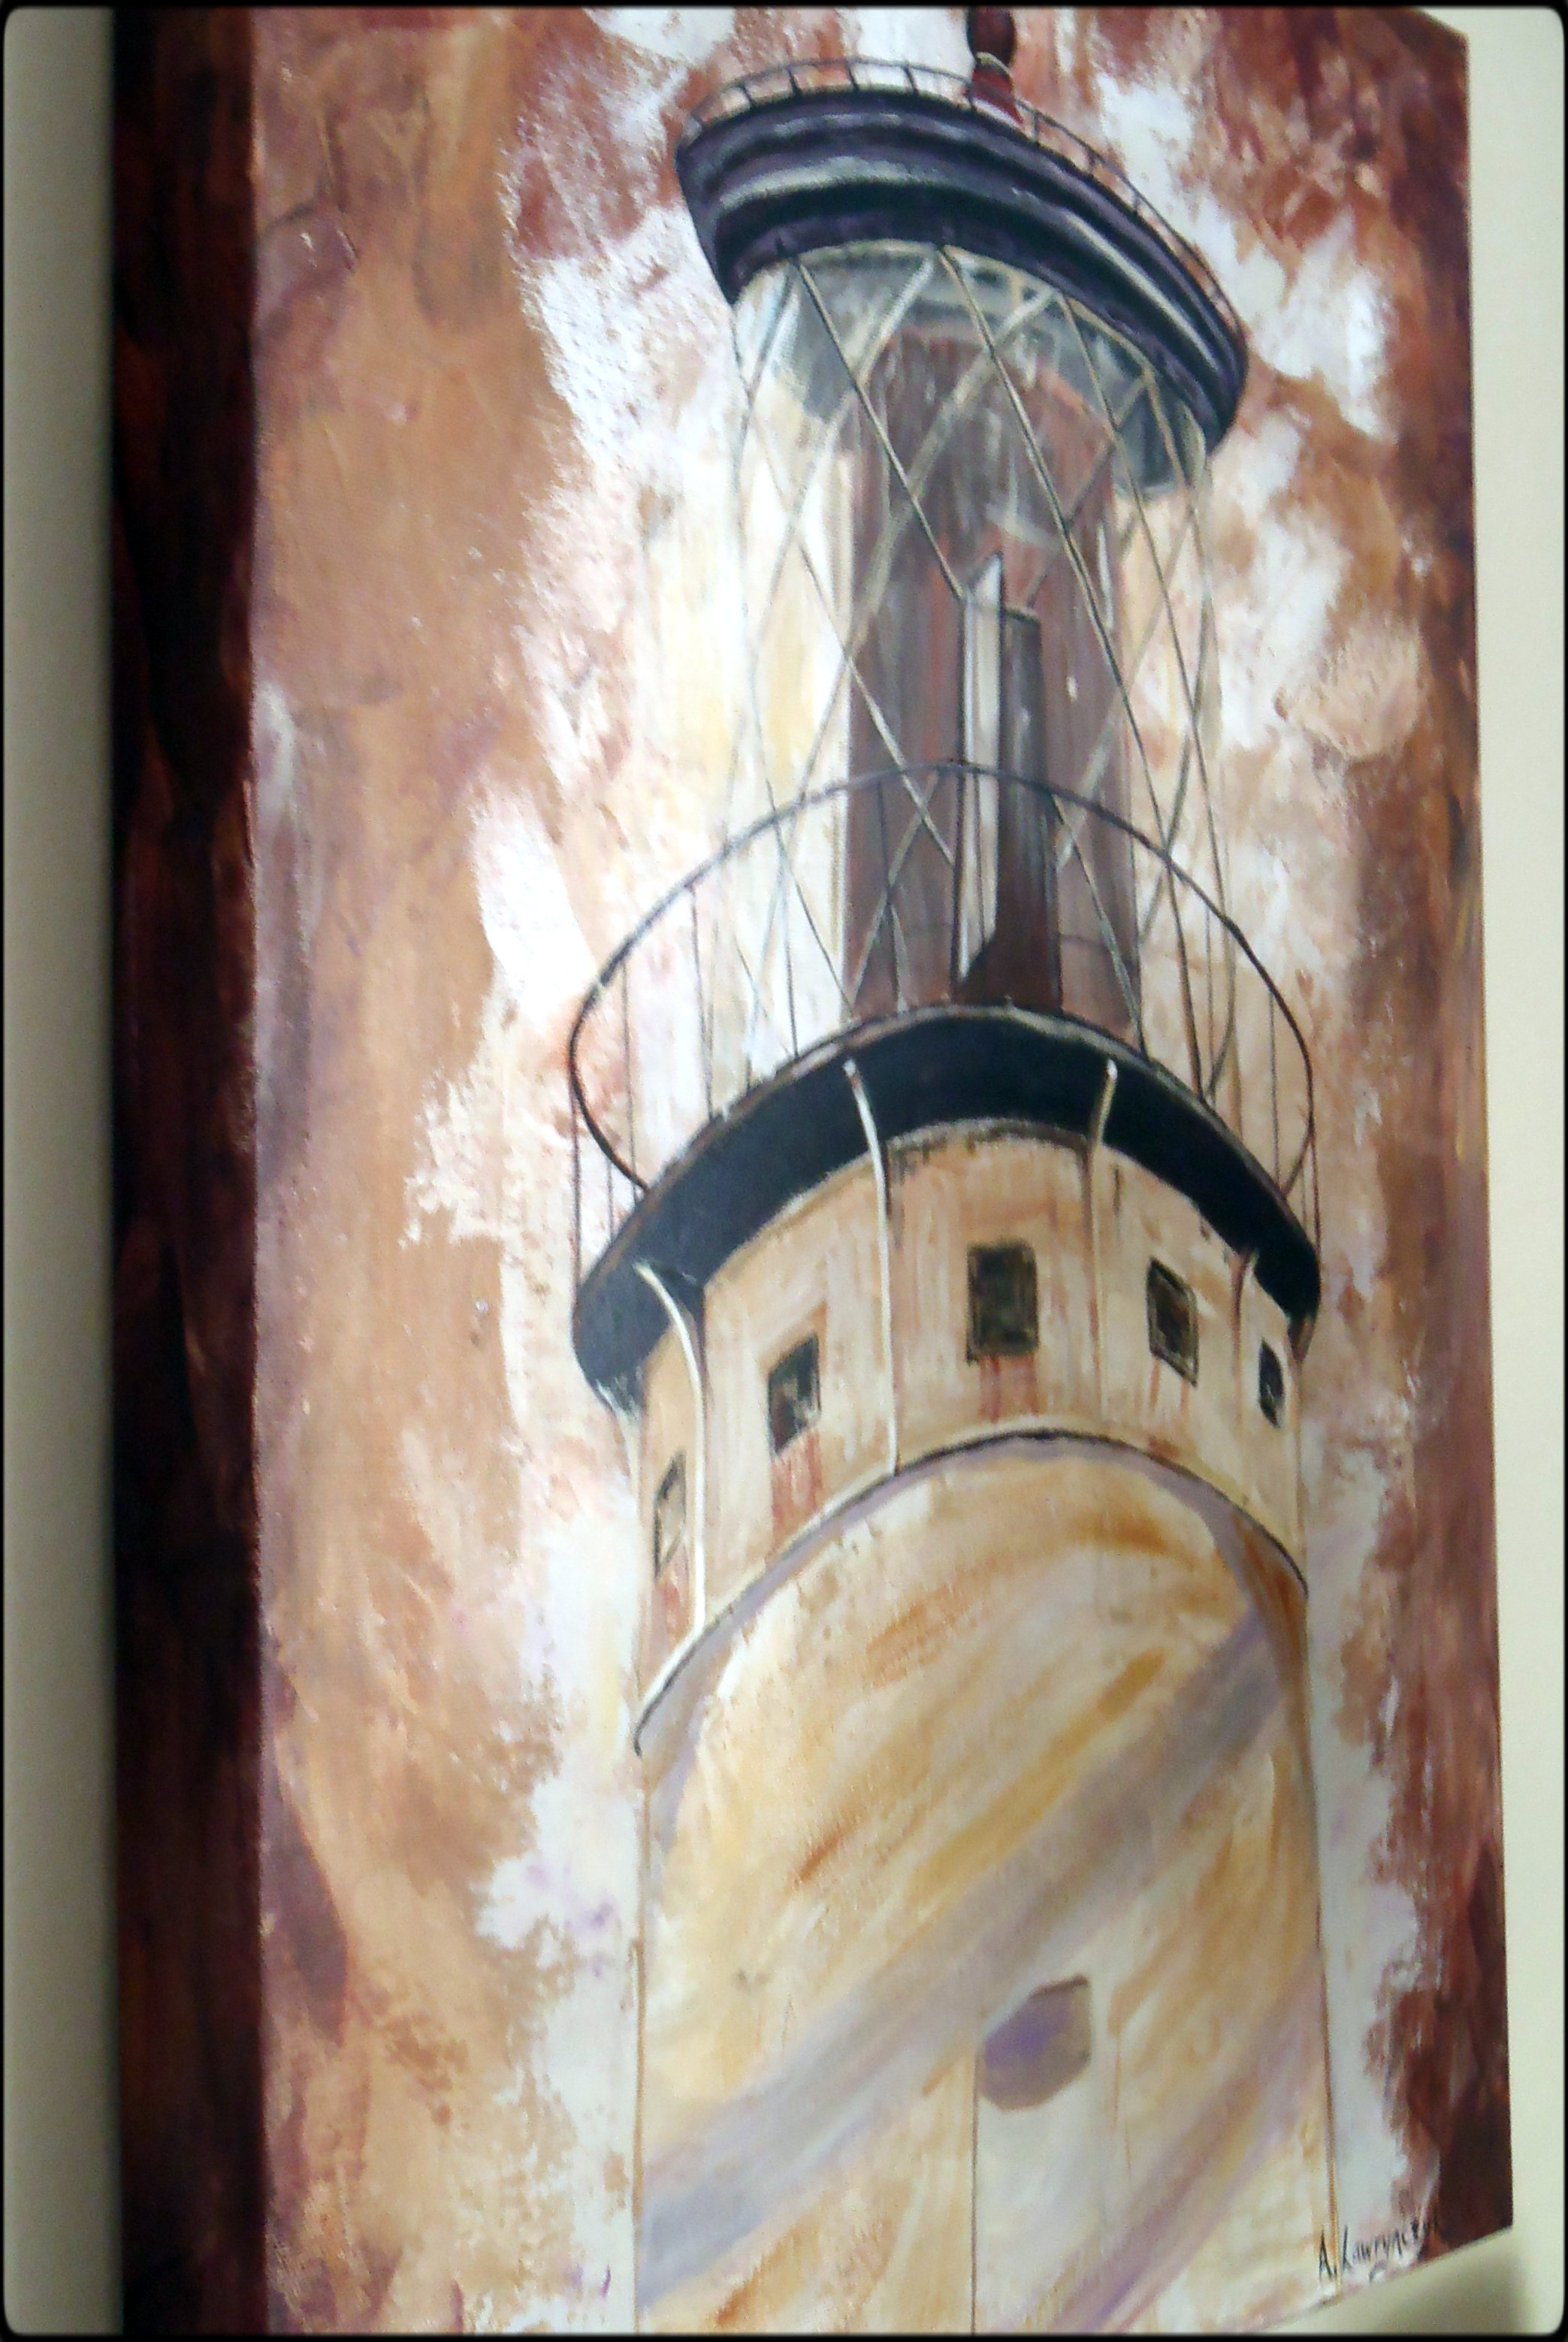 Side view - the painting is extended along the edges.